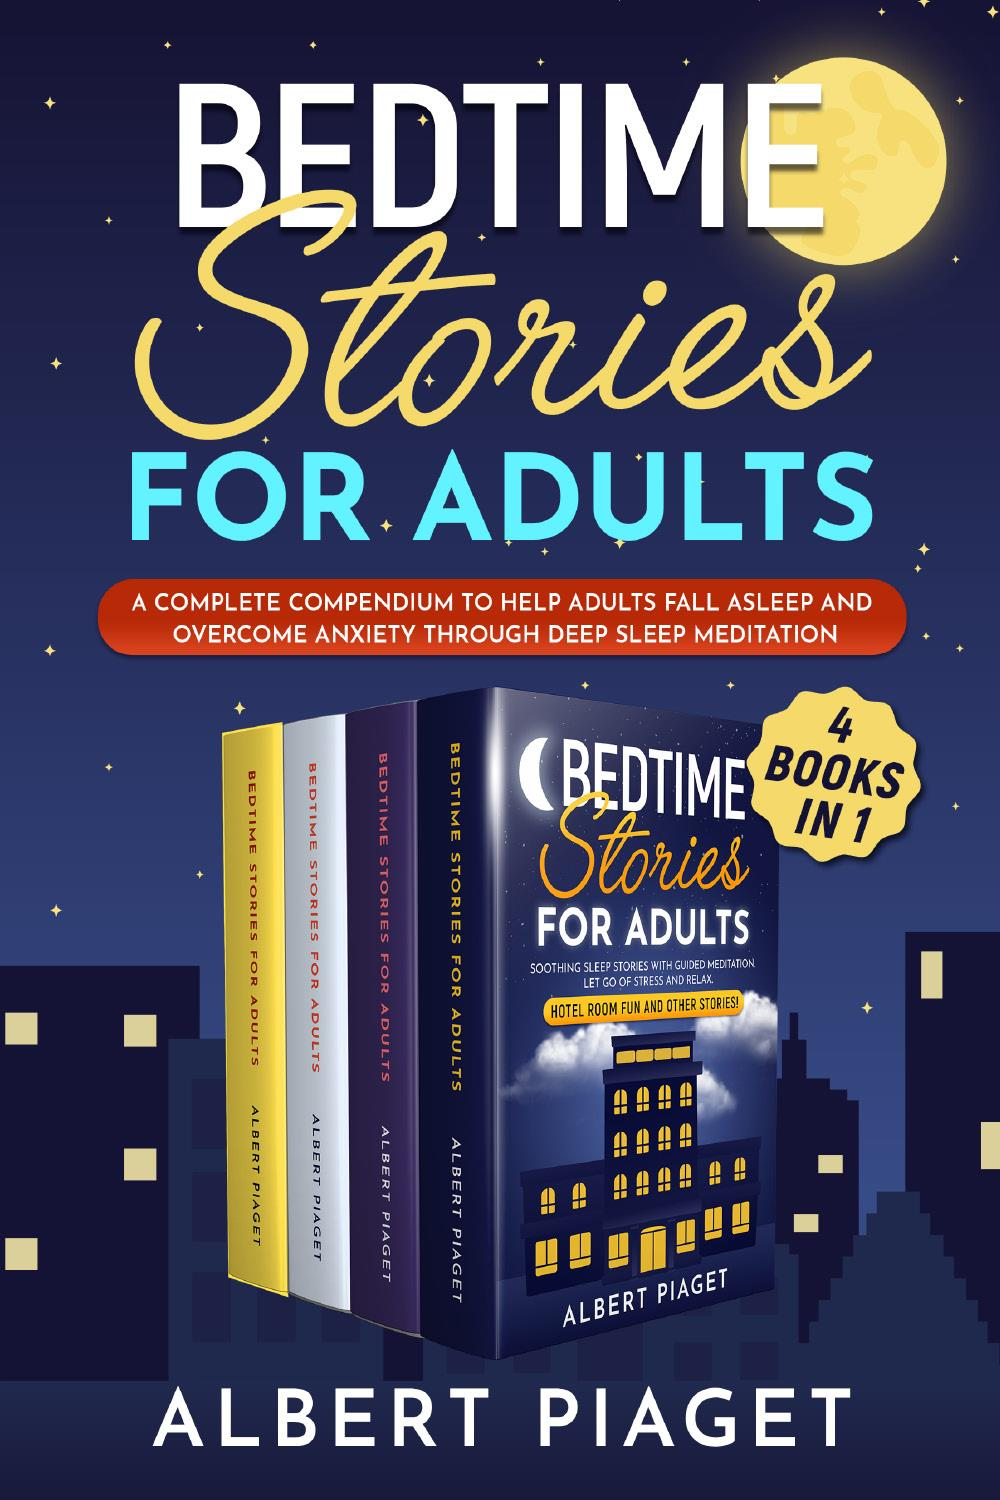 Bedtime Stories for Adults (4 Books in 1)